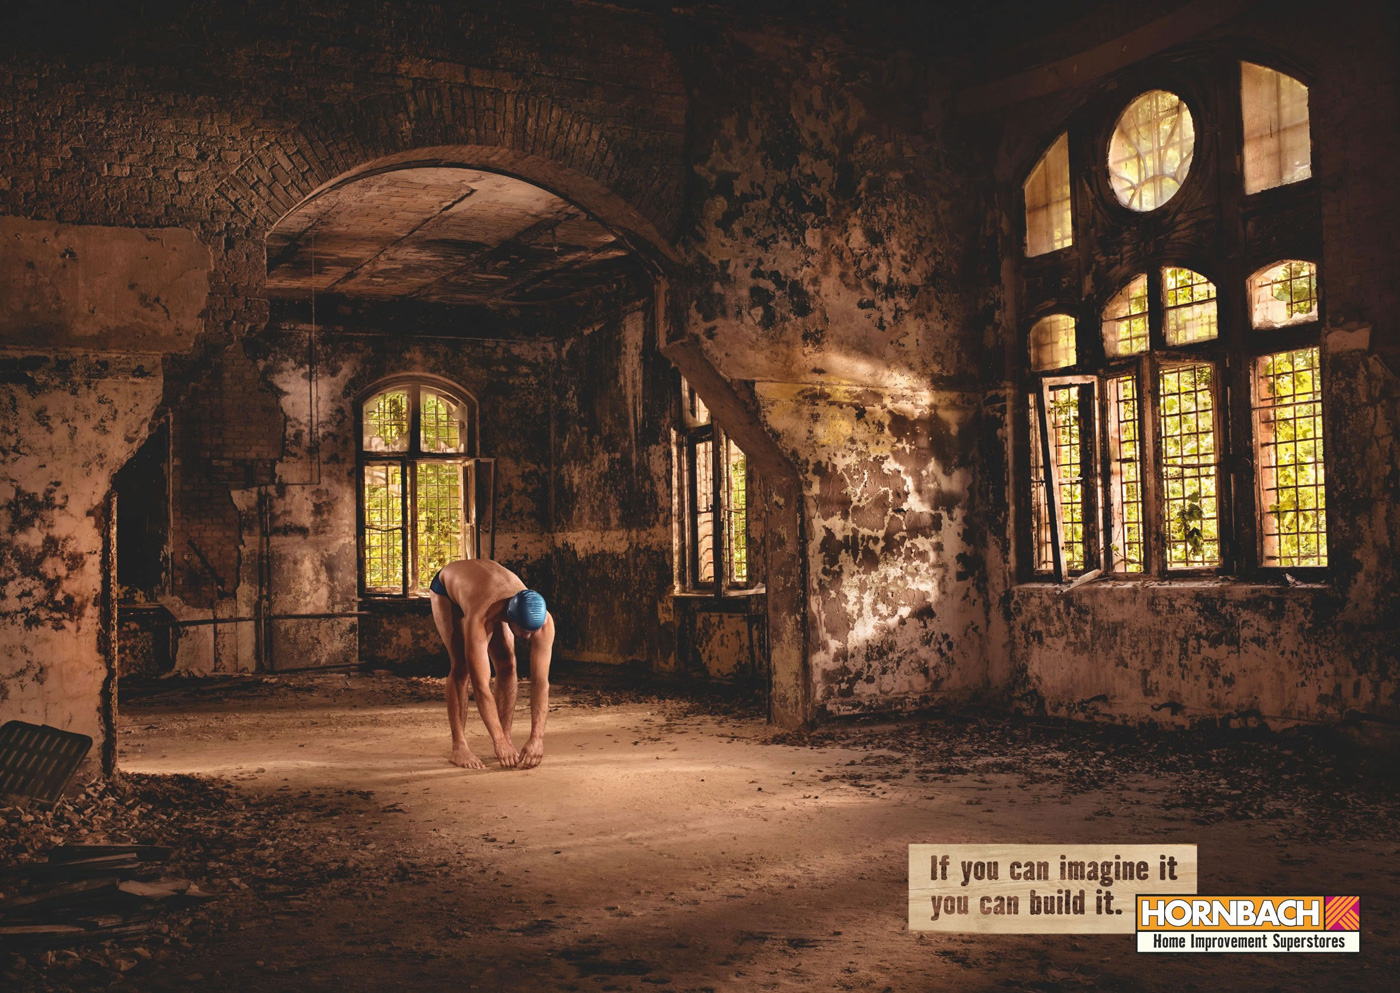 Hornbach Print Advert By Heimat Pool Ads Of The World